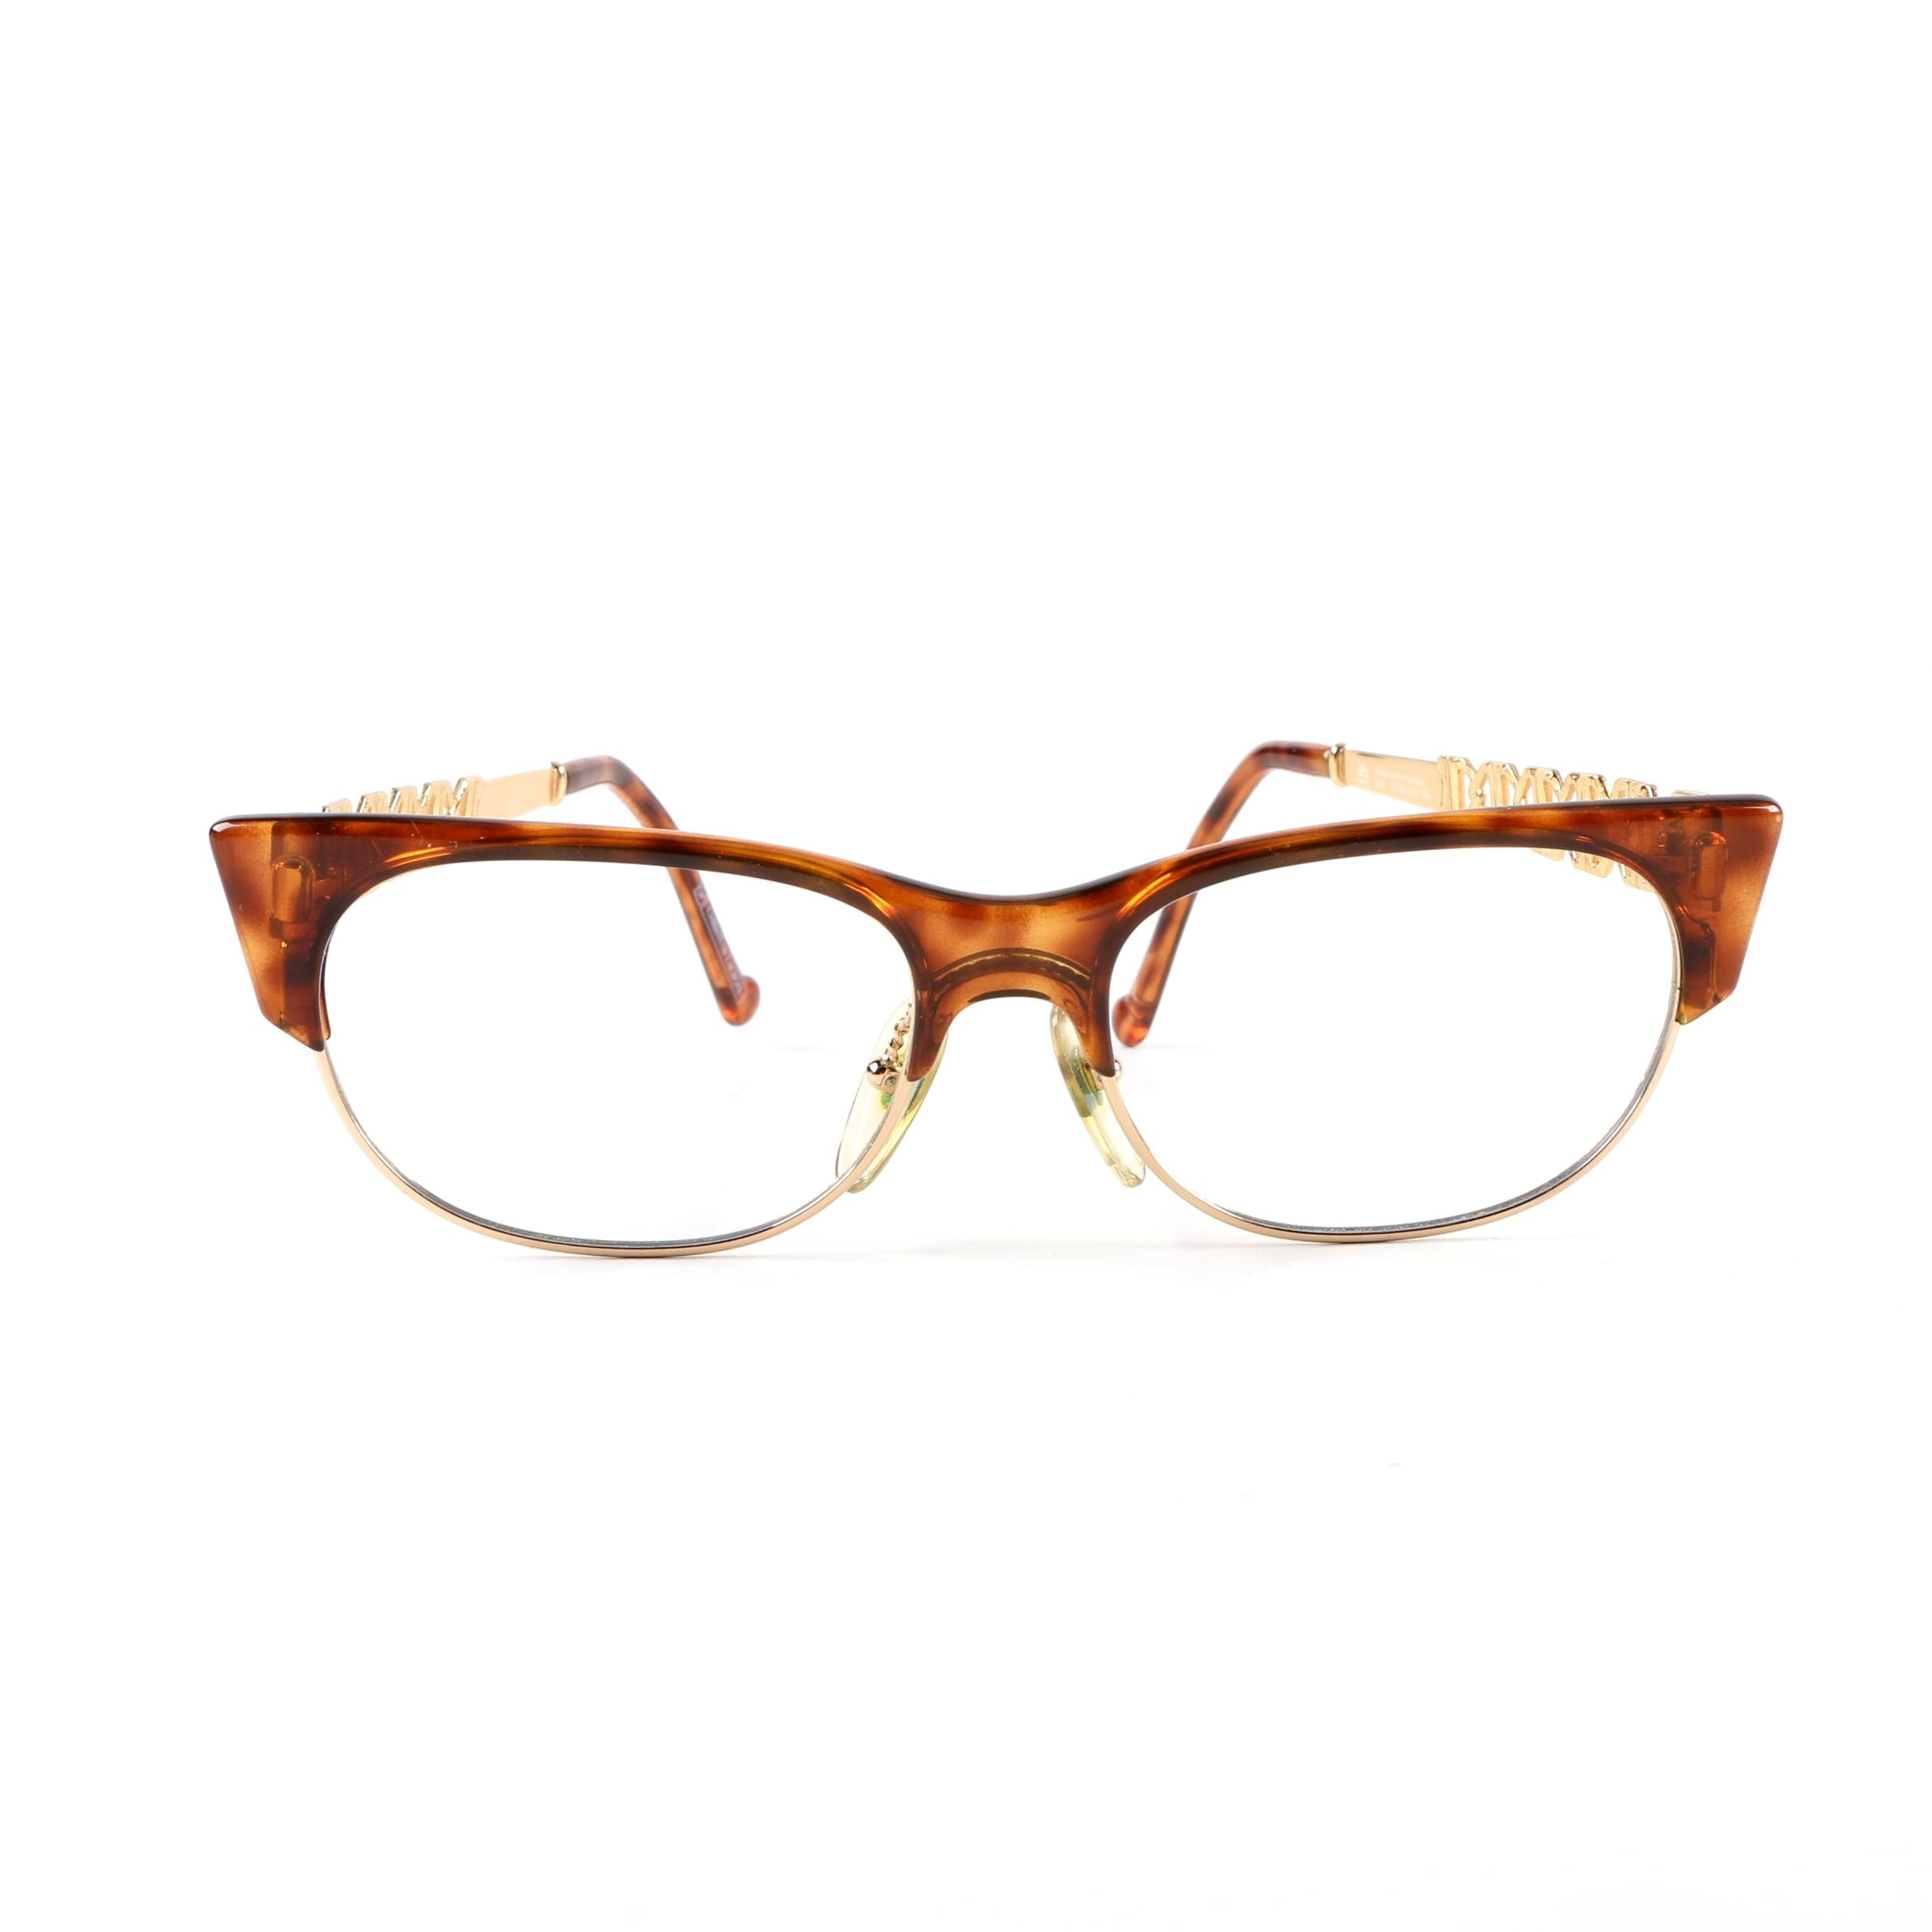 Christian Lacroix Tortoiseshell Style Cat Eye Eyeglass Frames, Made in Germany